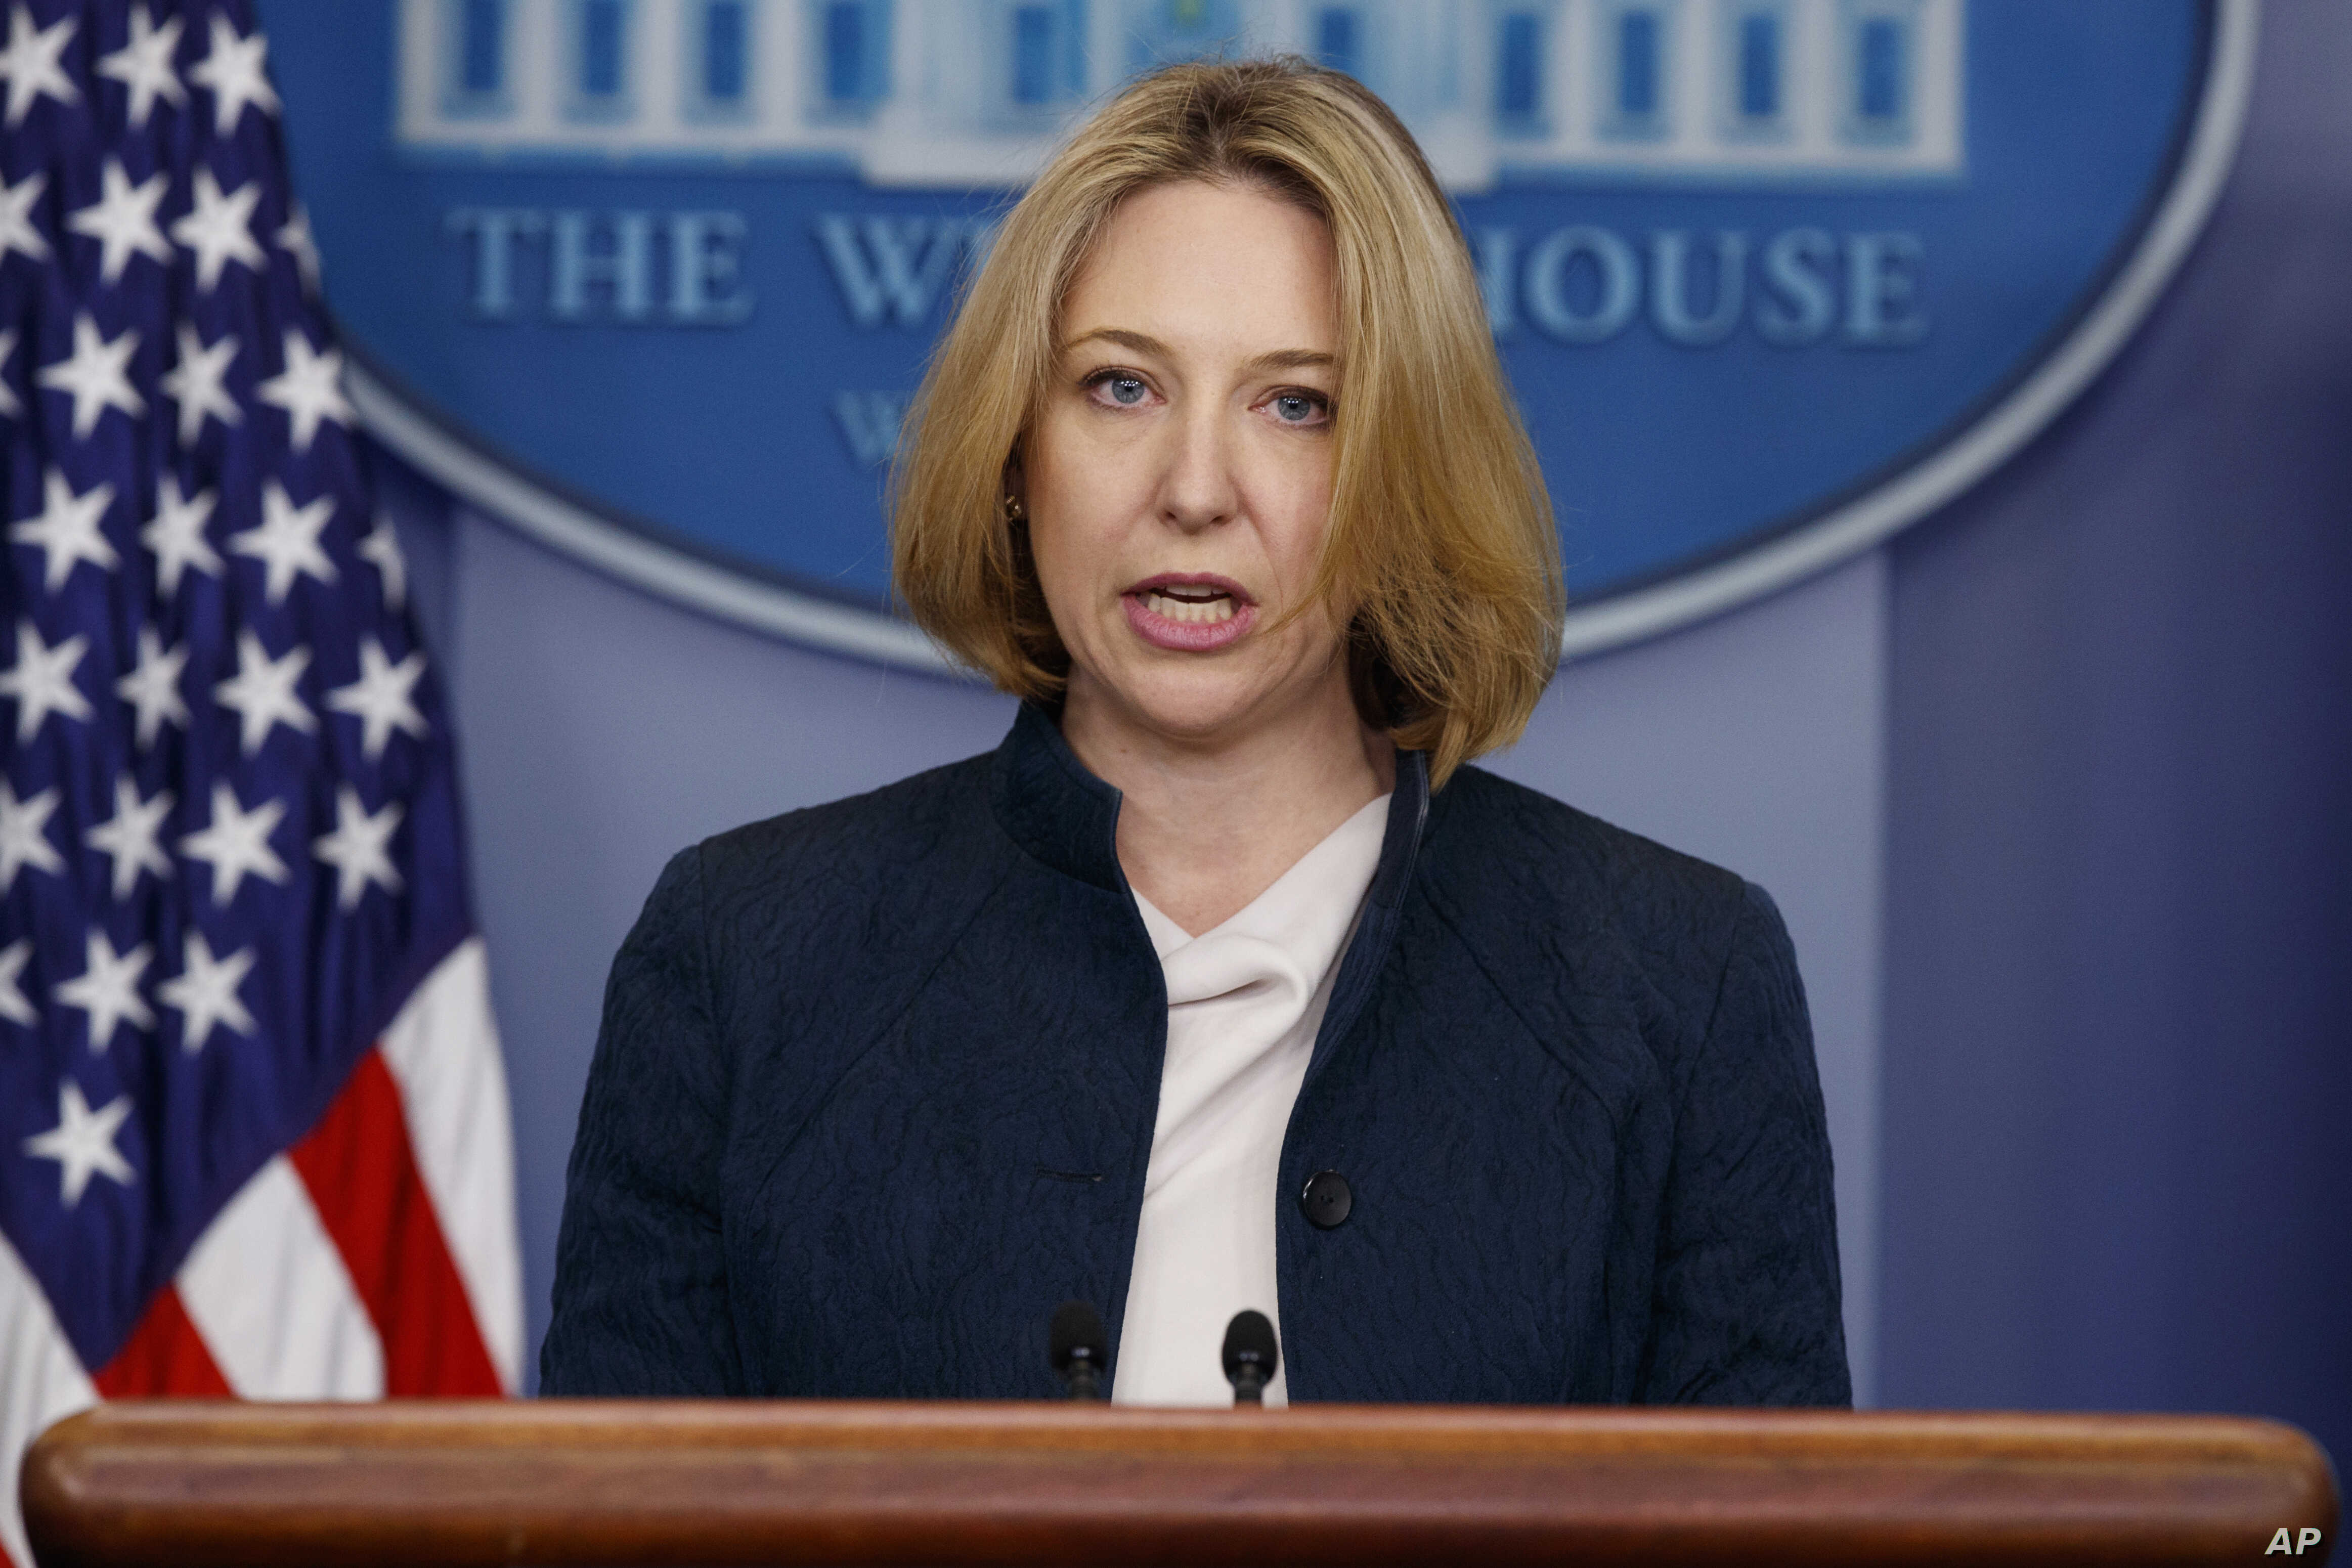 Assistant Secretary of Homeland Security for Cybersecurity and Communication Jeanette Manfra speaks during a briefing blaming North Korea for a ransomware attack, Dec. 19, 2017, in Washington.